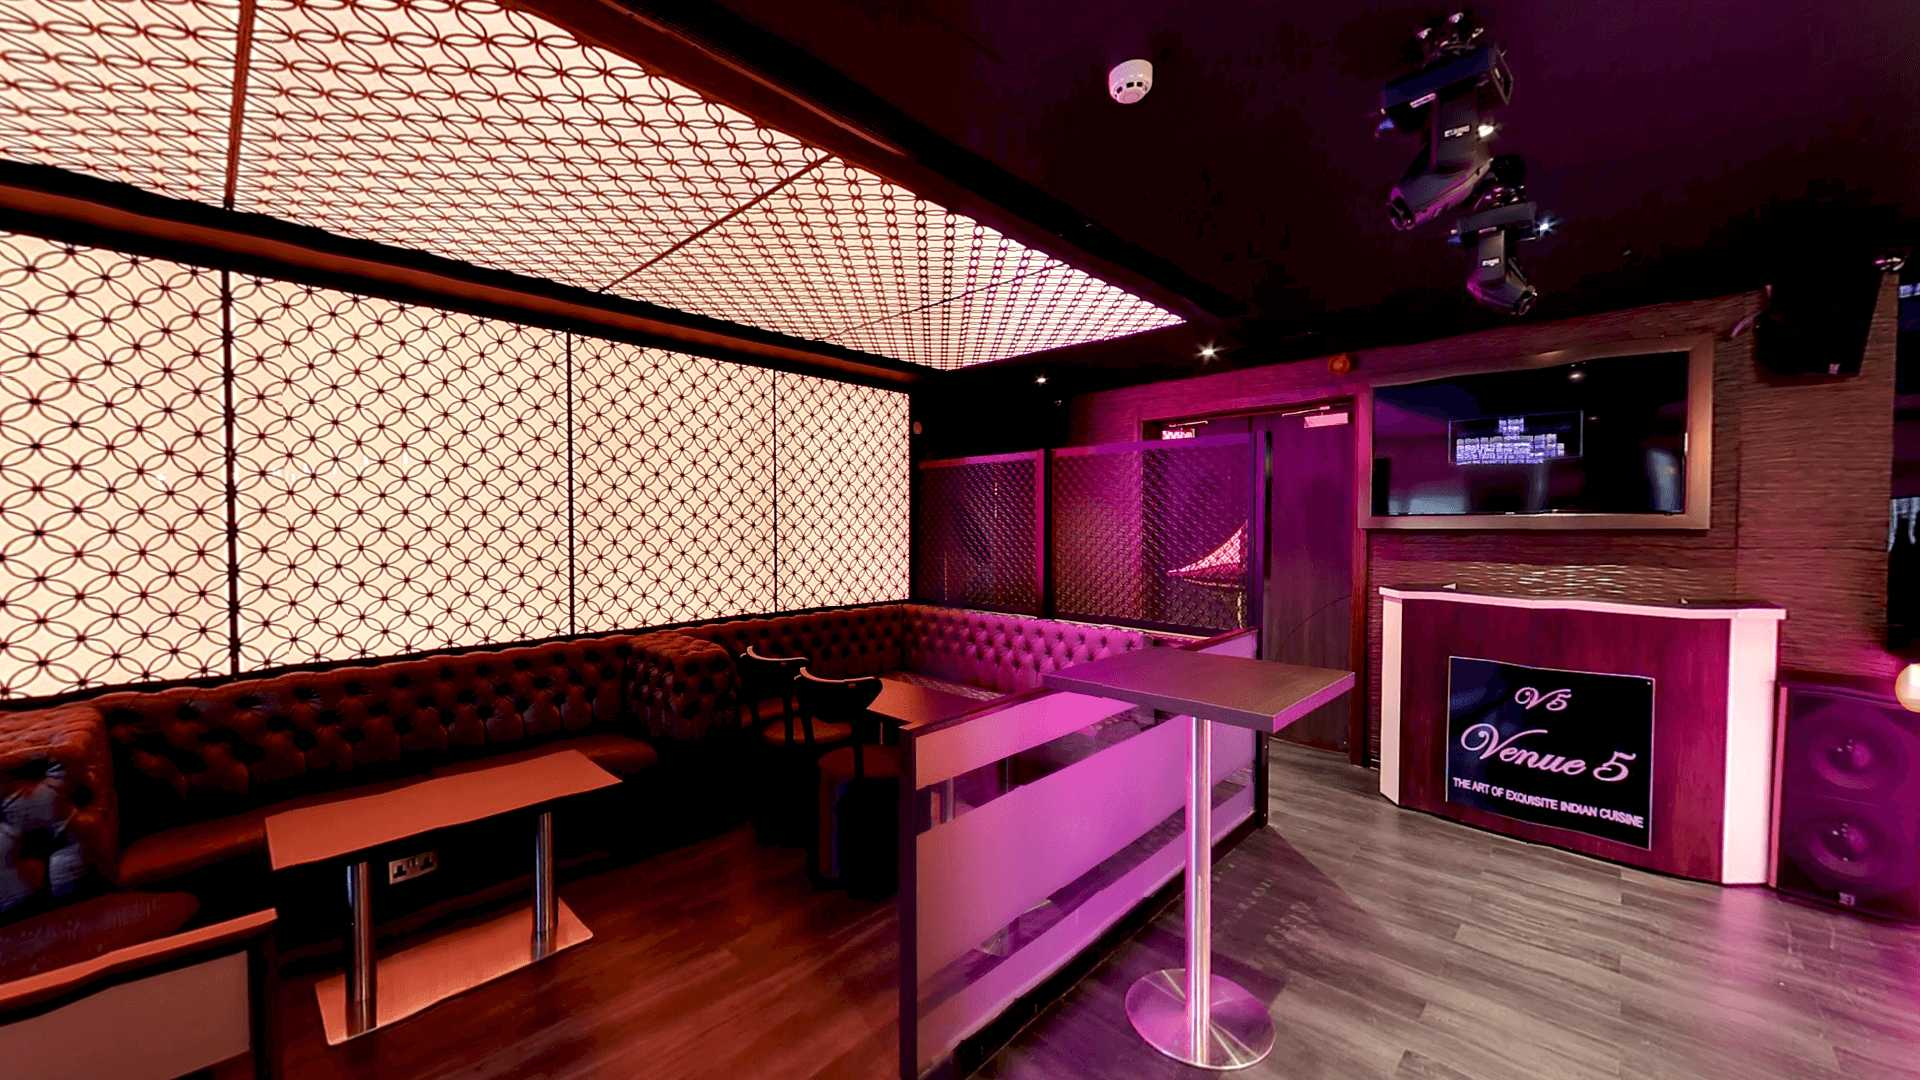 Picture of the Venue5 Lounge